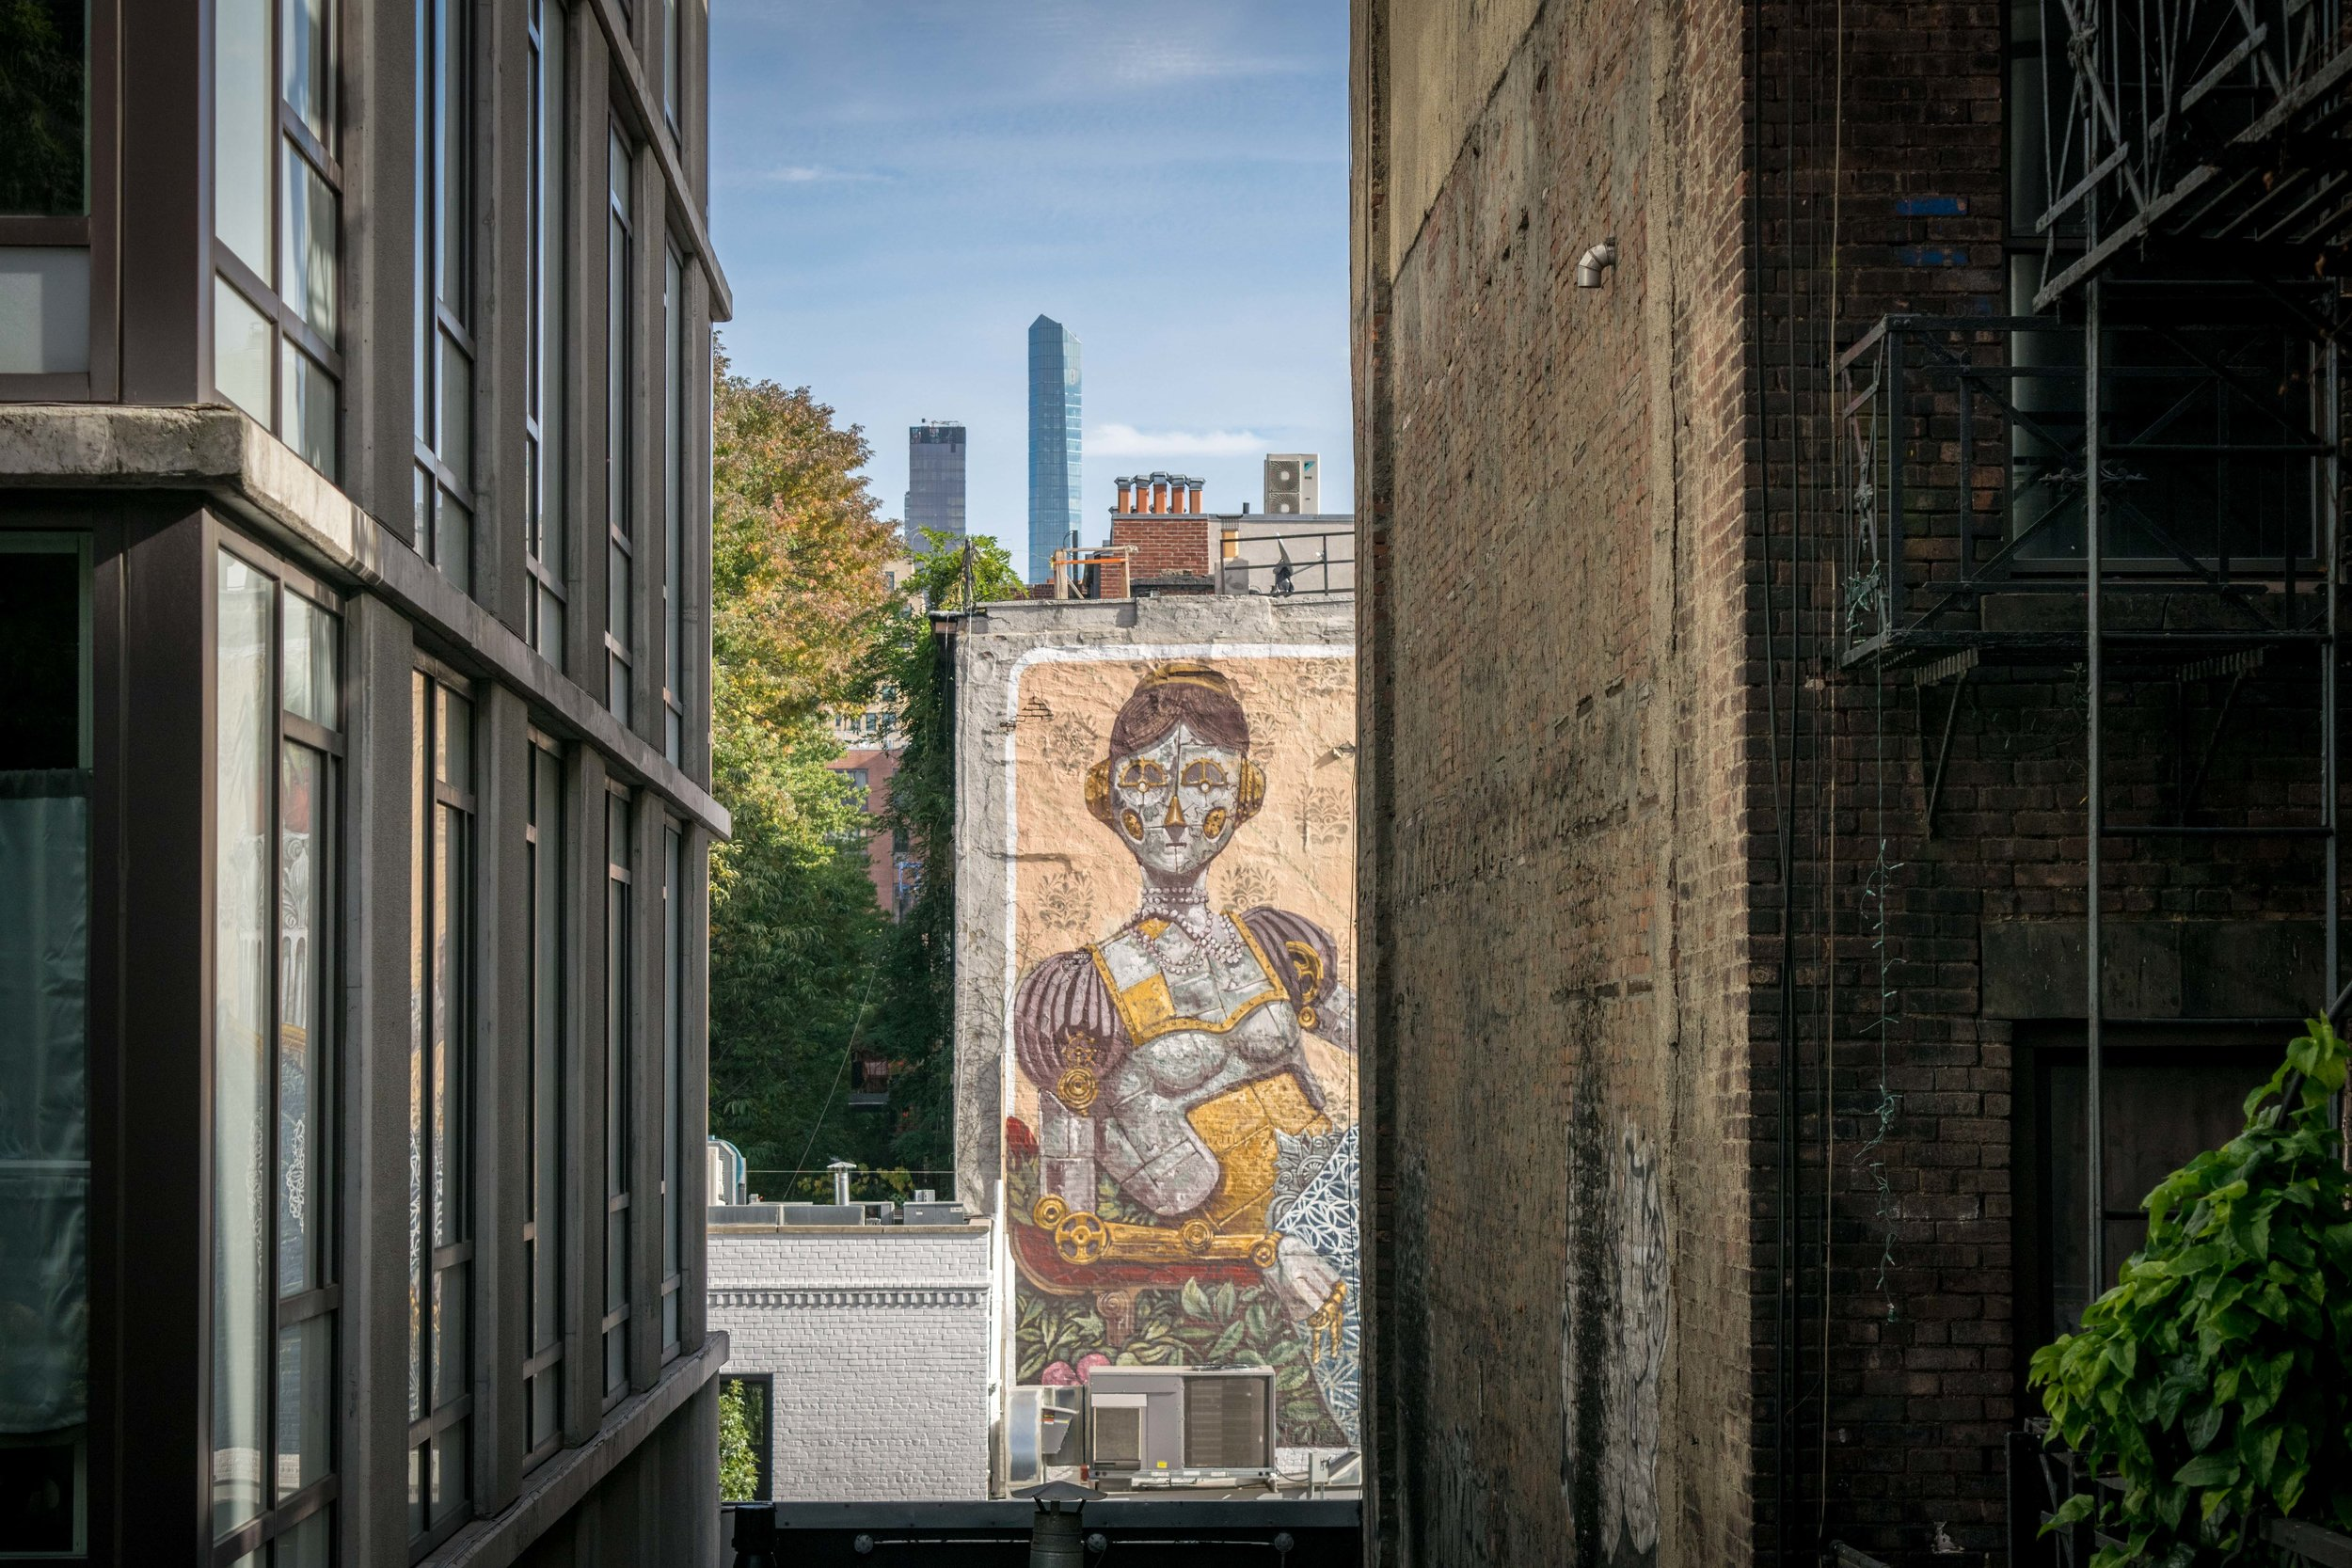 Large mural on a building near the High Line